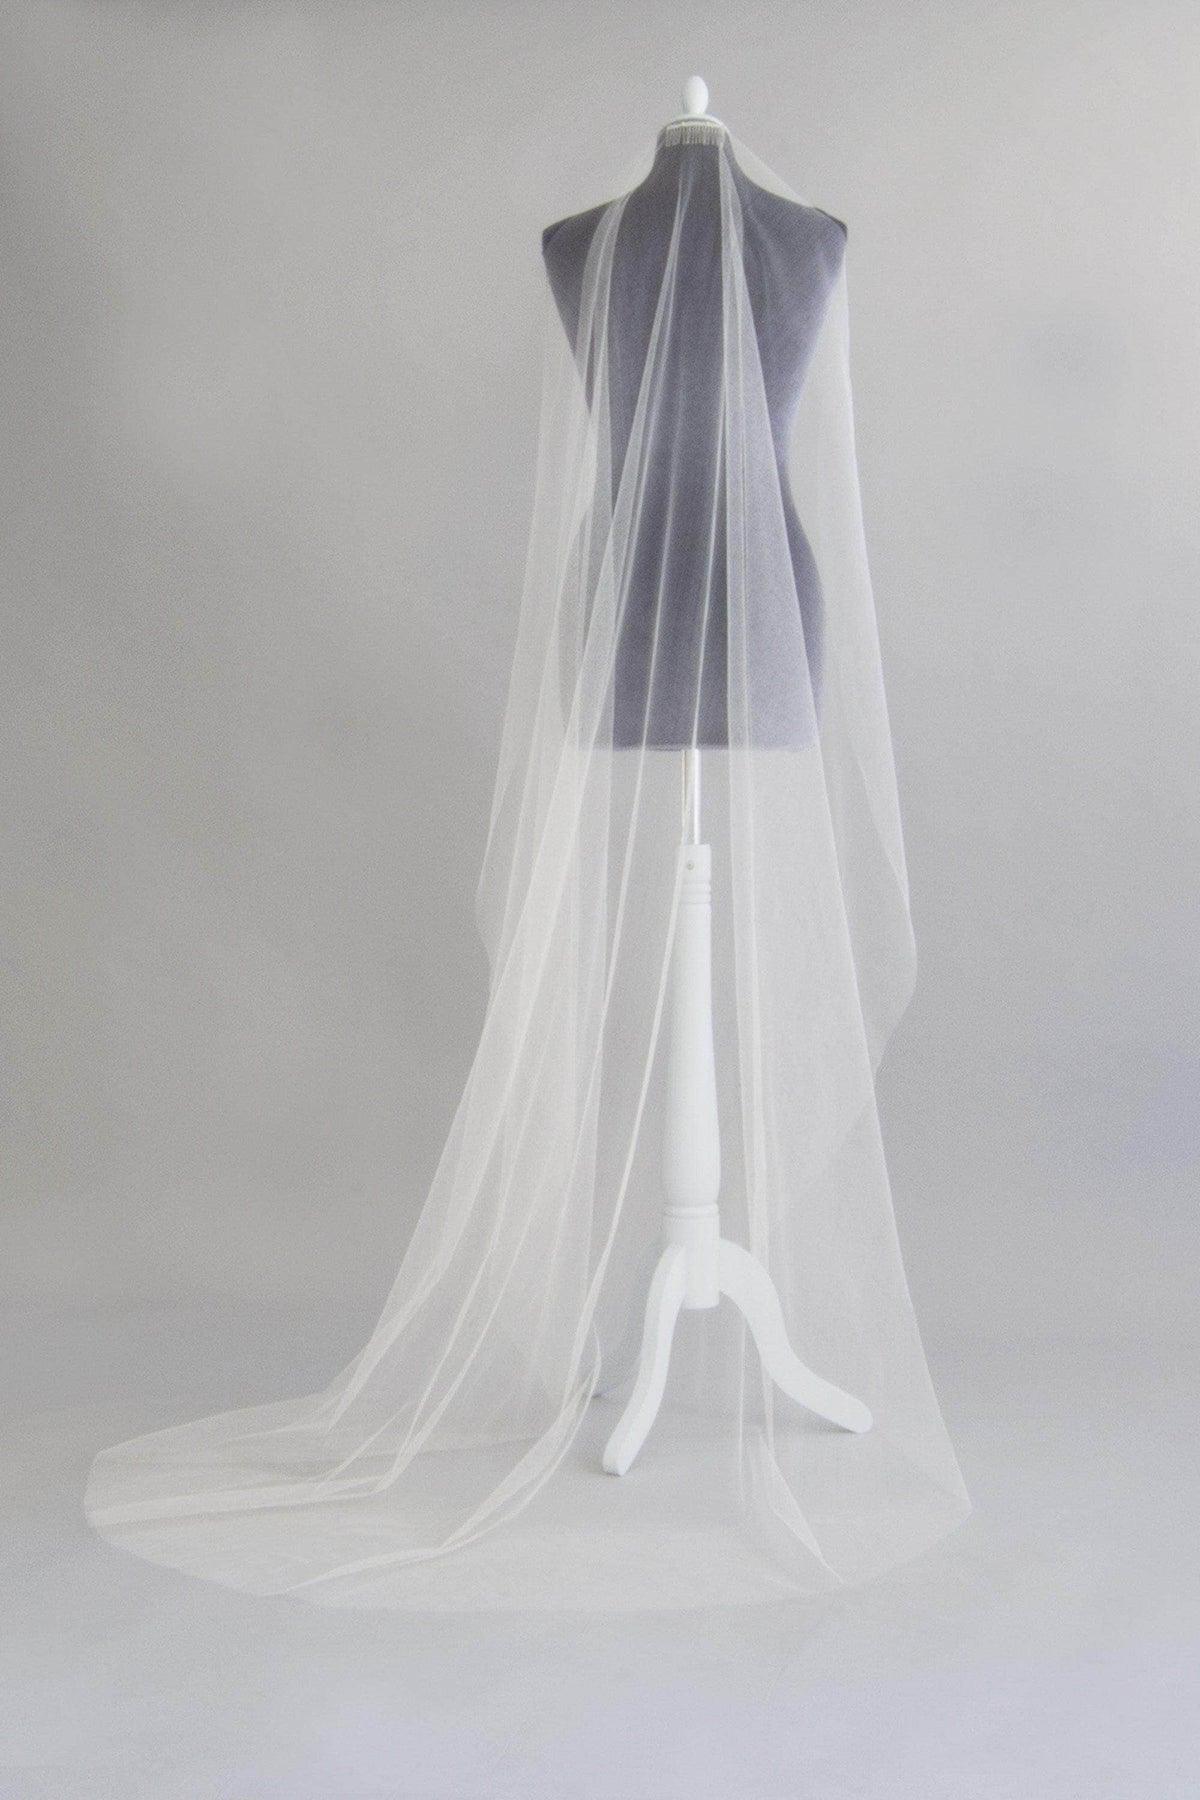 Wedding Veil Ivory / Floor length / Silver Crisp silk barely there wedding veil - 'Margot'